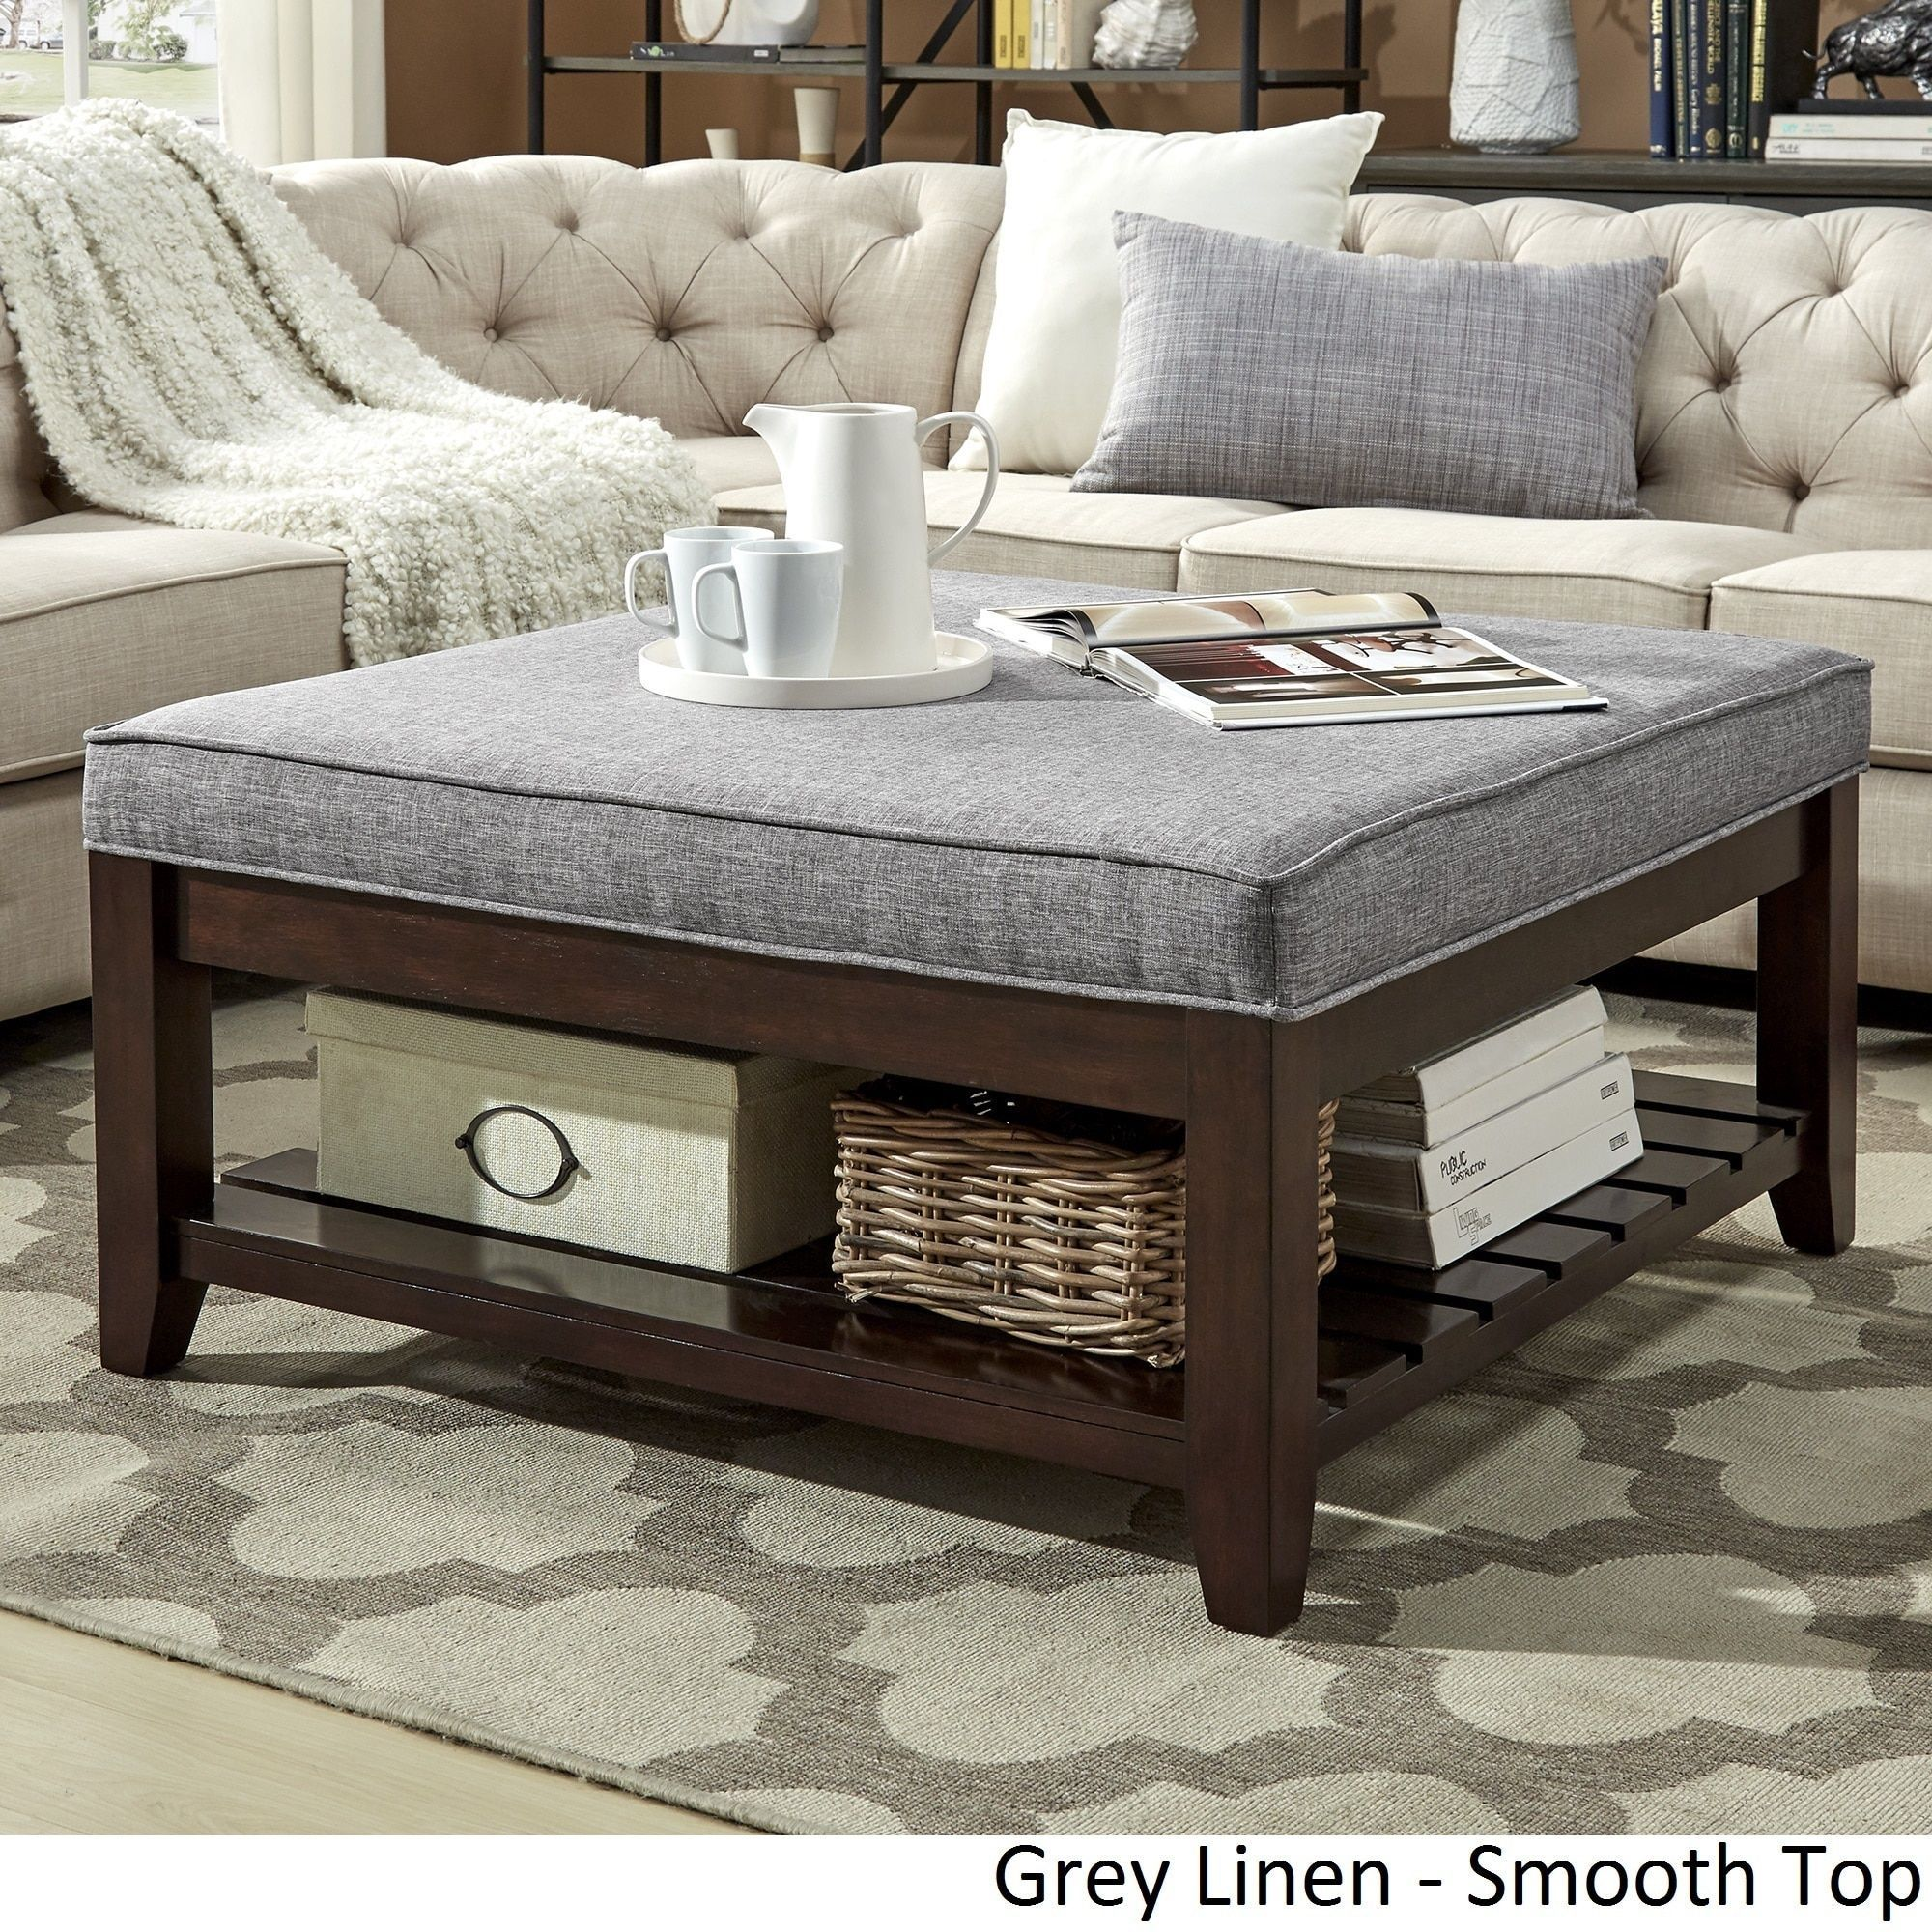 lennon espresso planked storage ottoman coffee table by. Black Bedroom Furniture Sets. Home Design Ideas